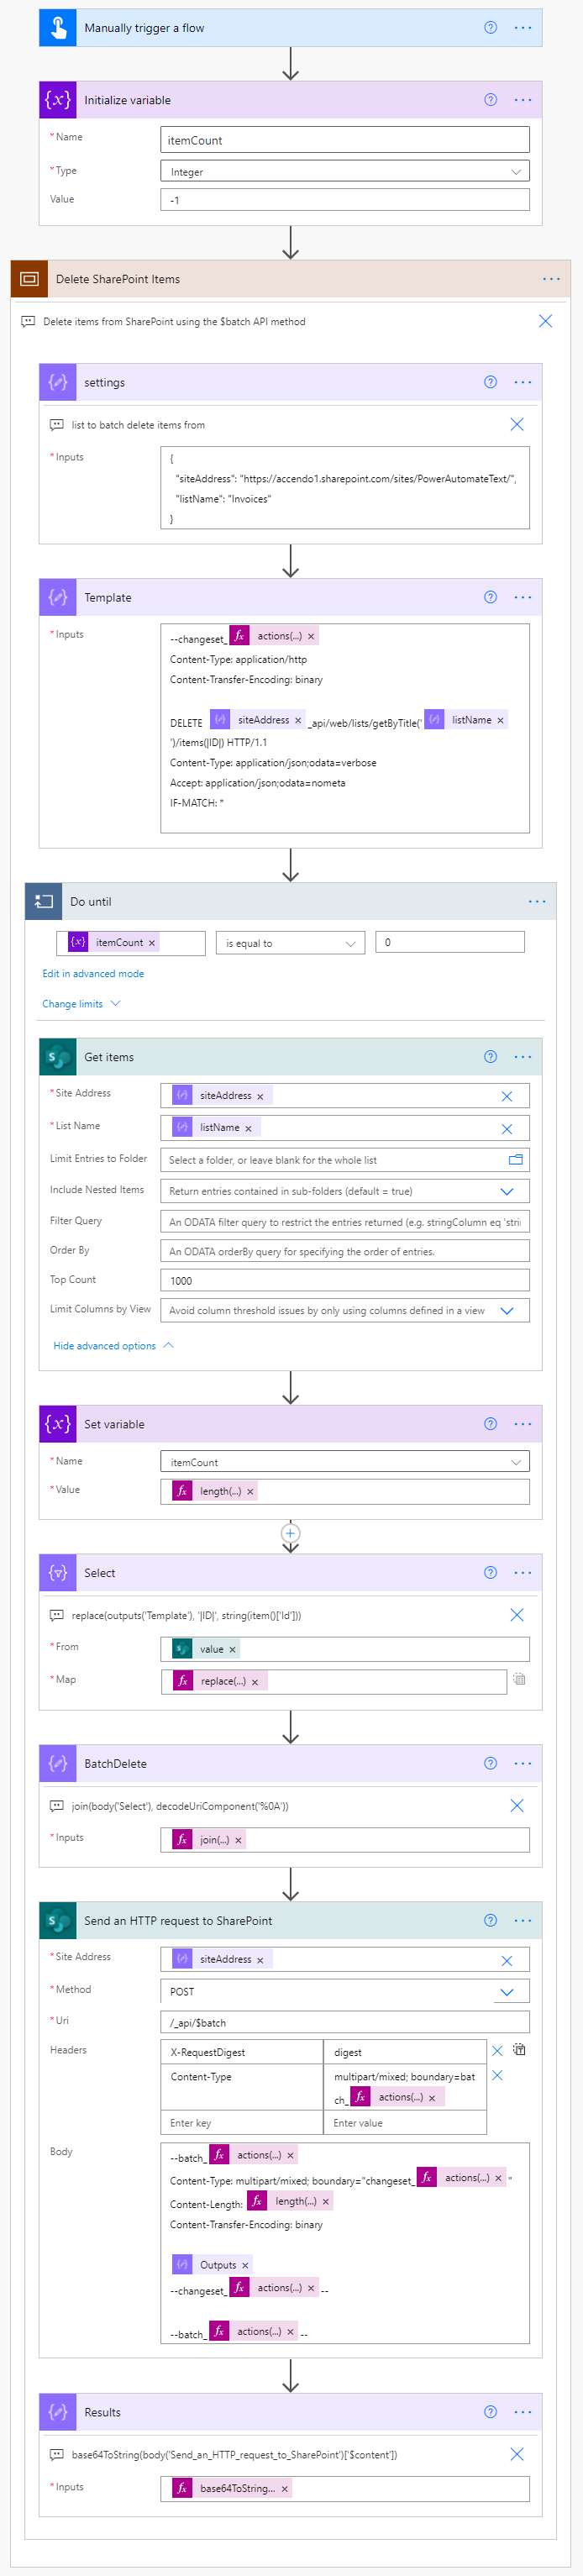 Image of a Power Automate Flow that uses the SharePoint batch API method to quickly delete items from a SharePoint List